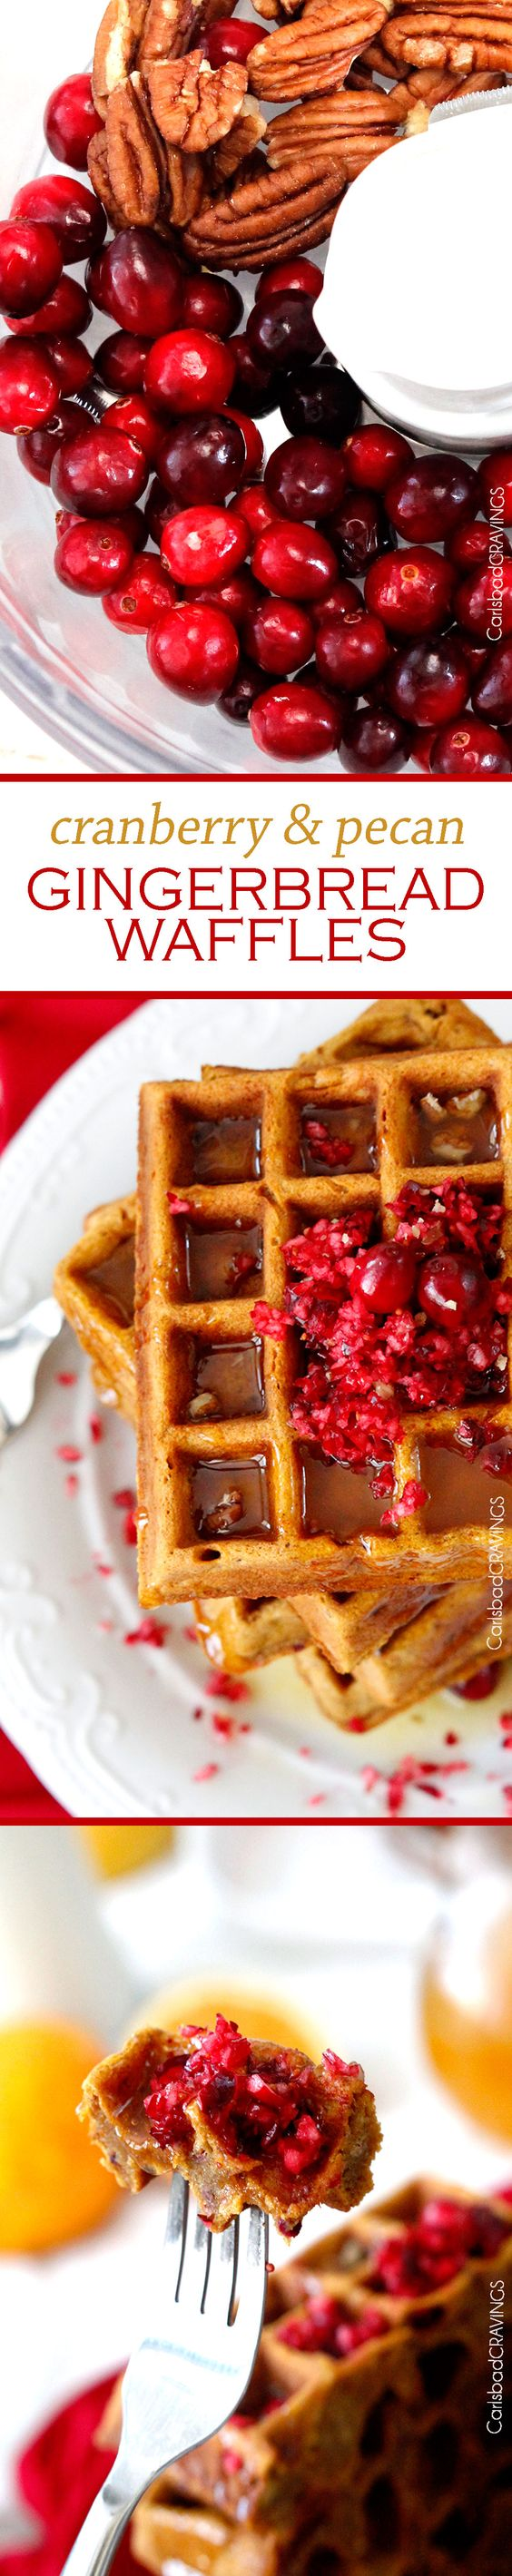 Cranberry Pecan Gingerbread Waffles with Orange Syrup (Gluten Free ...